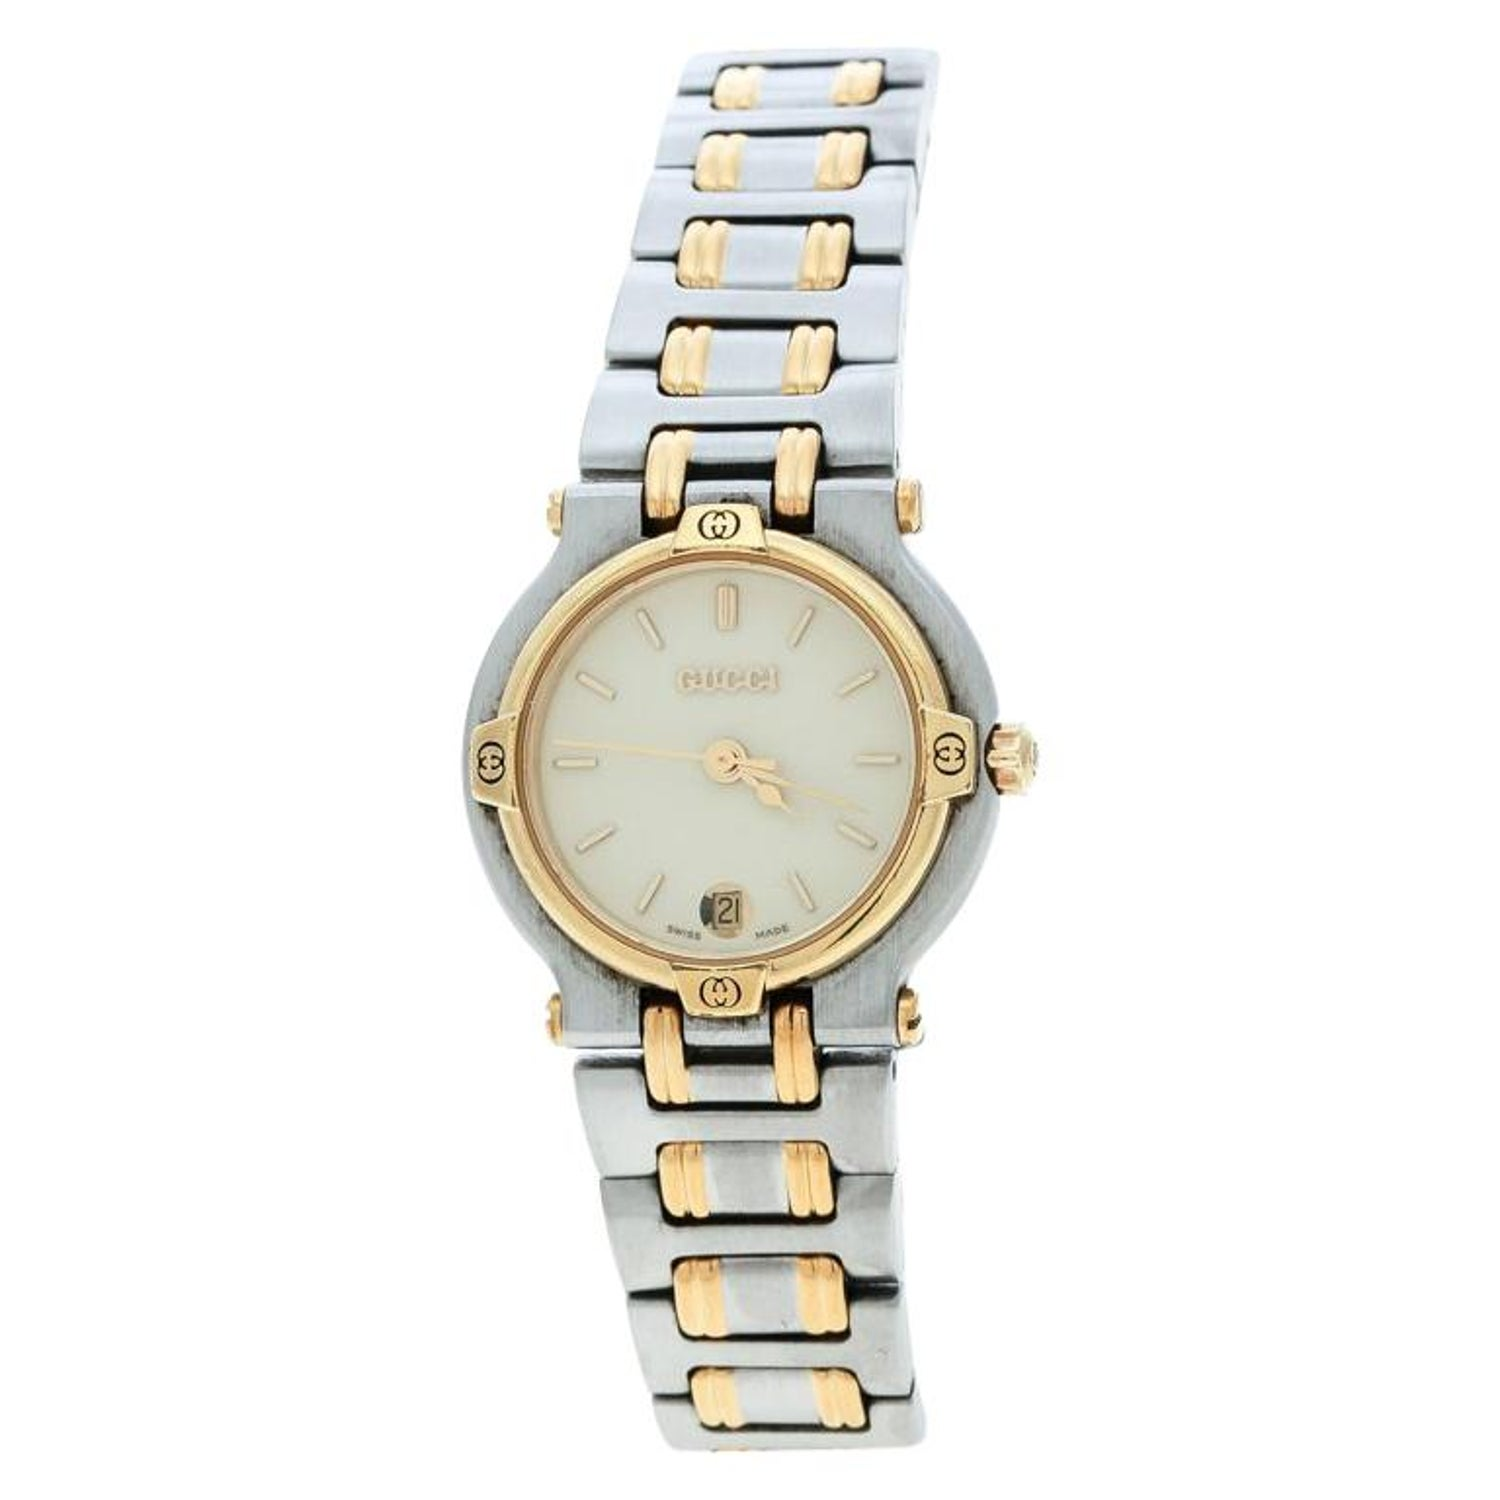 f5329cab9d6 Gucci Cream Two-Tone Stainless Steel 9000L Women s Wristwatch 25 mm For  Sale at 1stdibs